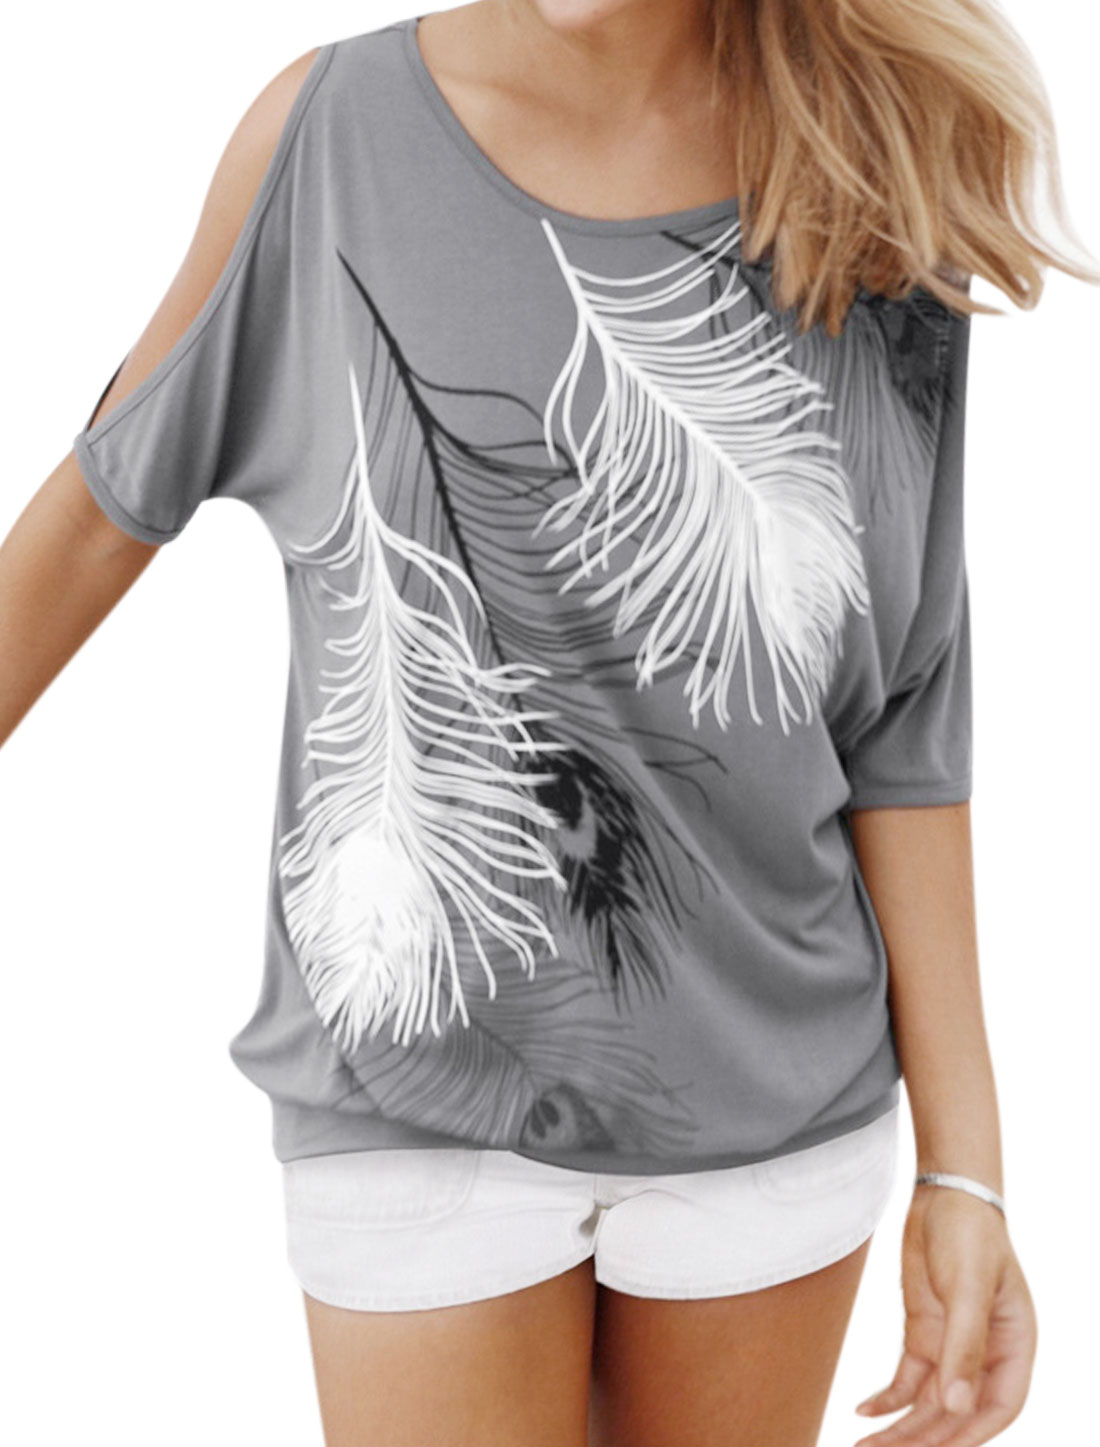 Women Split Out Batwing Sleeve Feather Prints Blouse Gray M